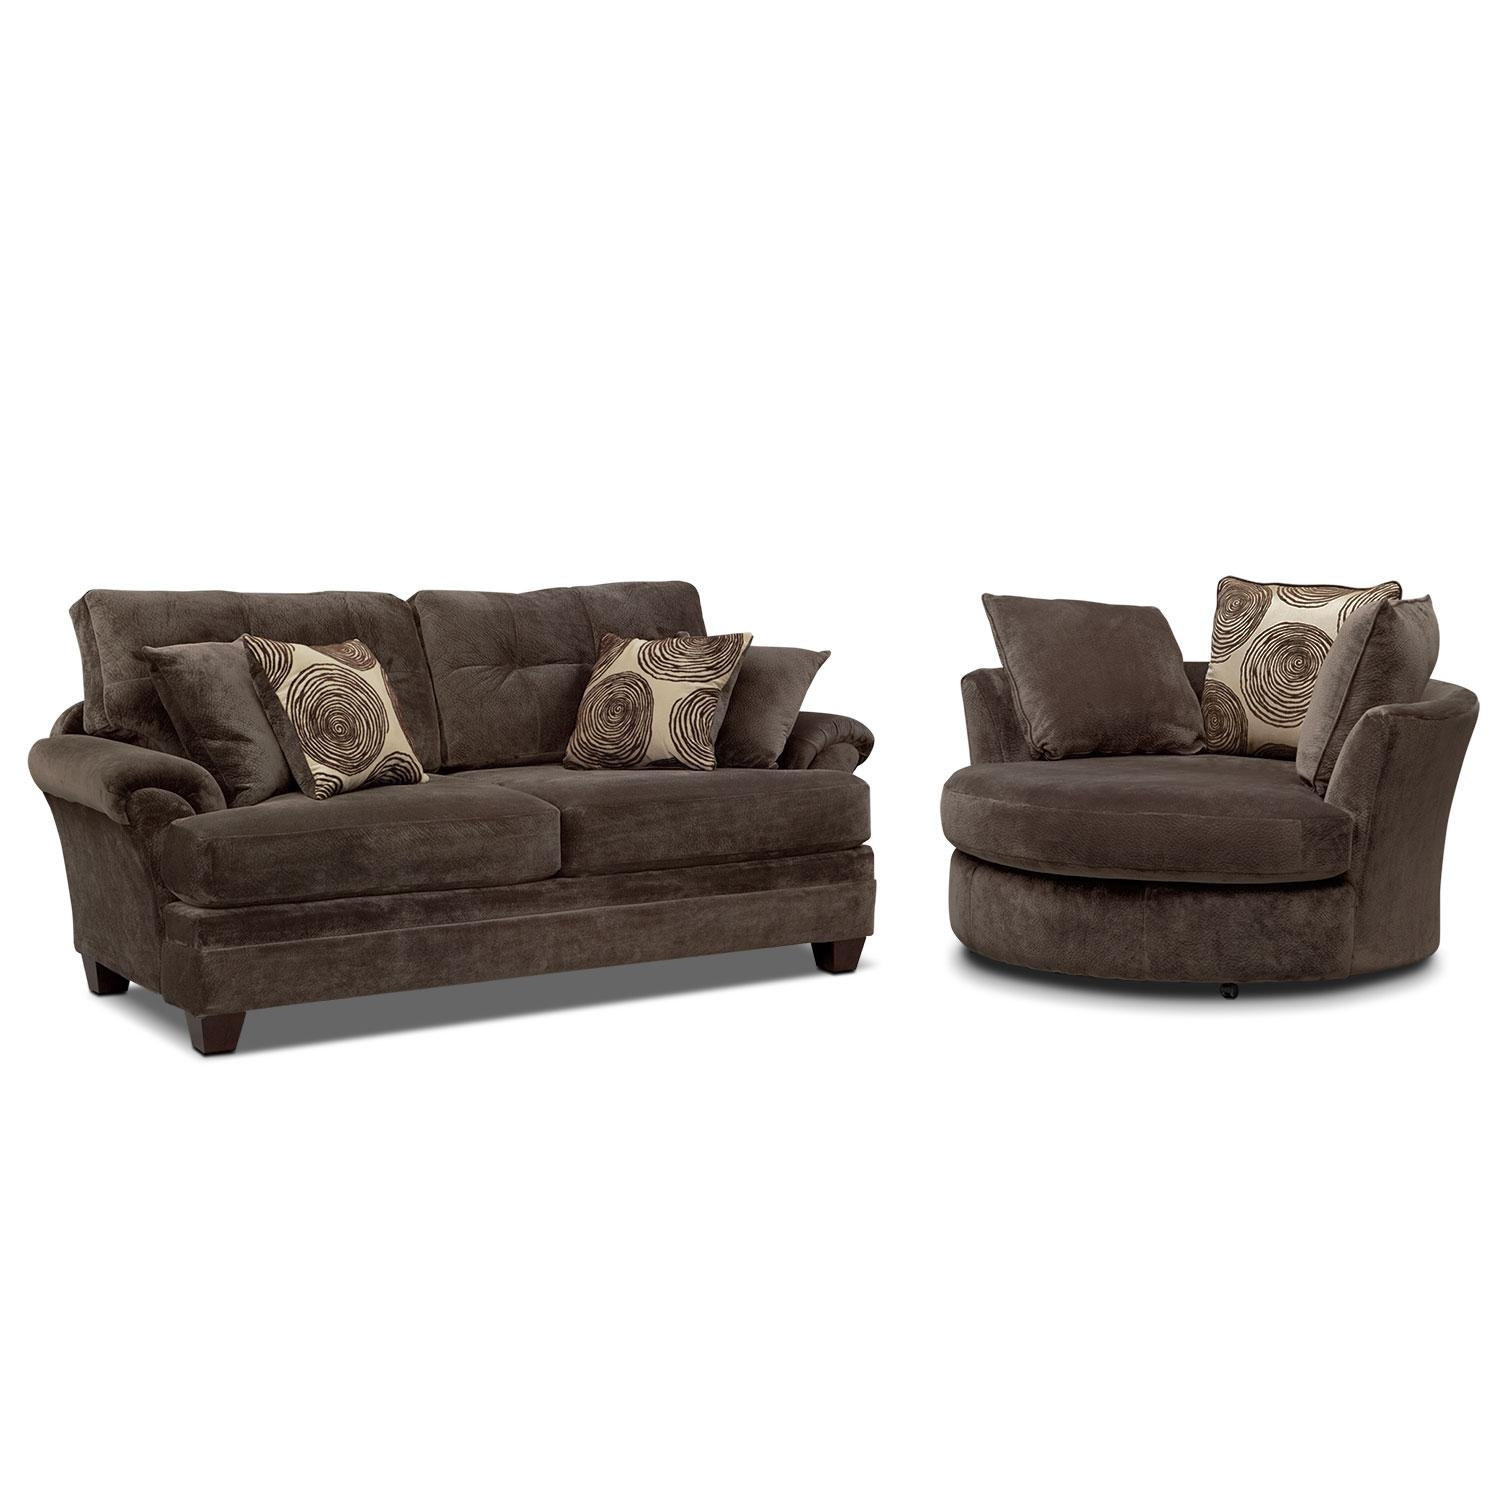 Cordelle Sofa And Swivel Chair Set – Chocolate | Value City Furniture Regarding Sofa With Swivel Chair (View 4 of 20)